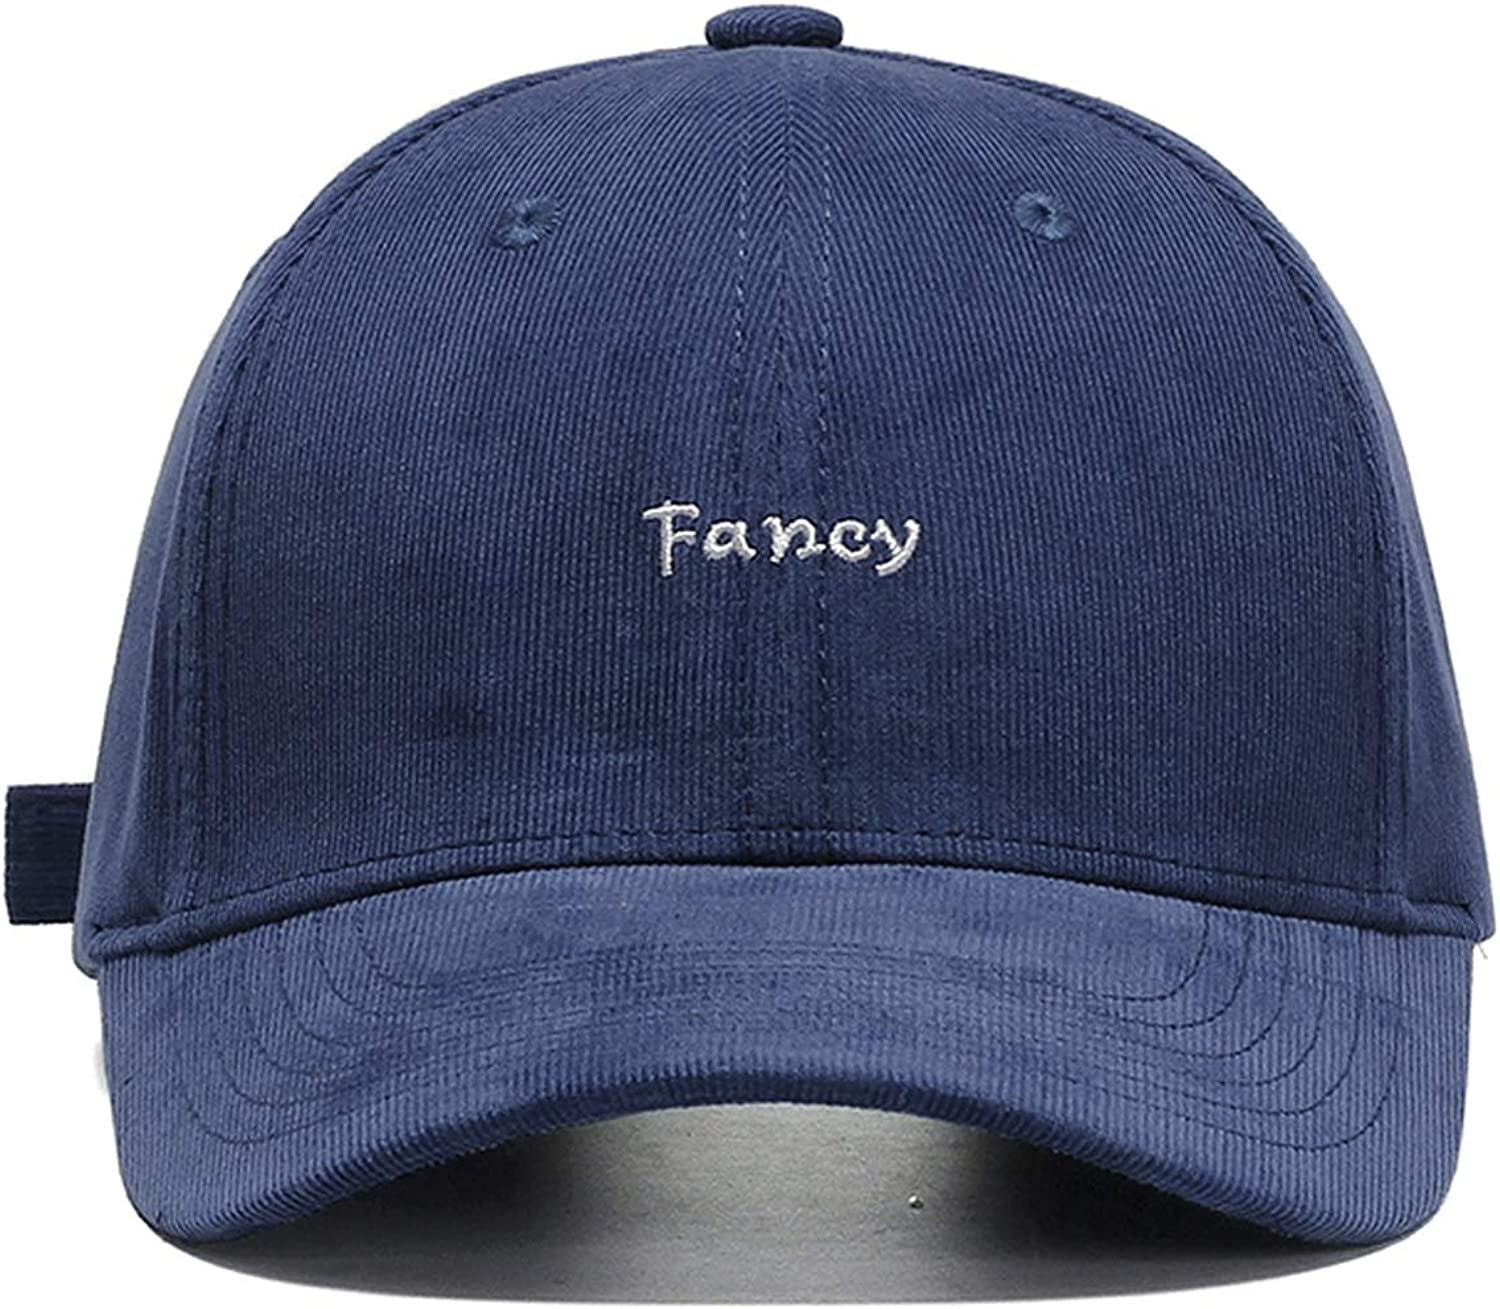 Ron Kite Fcany Embroidery Baseball Cap Fashion Hop Hip Corduroy Dad Hat Casual Adjustable Outdoor Hat